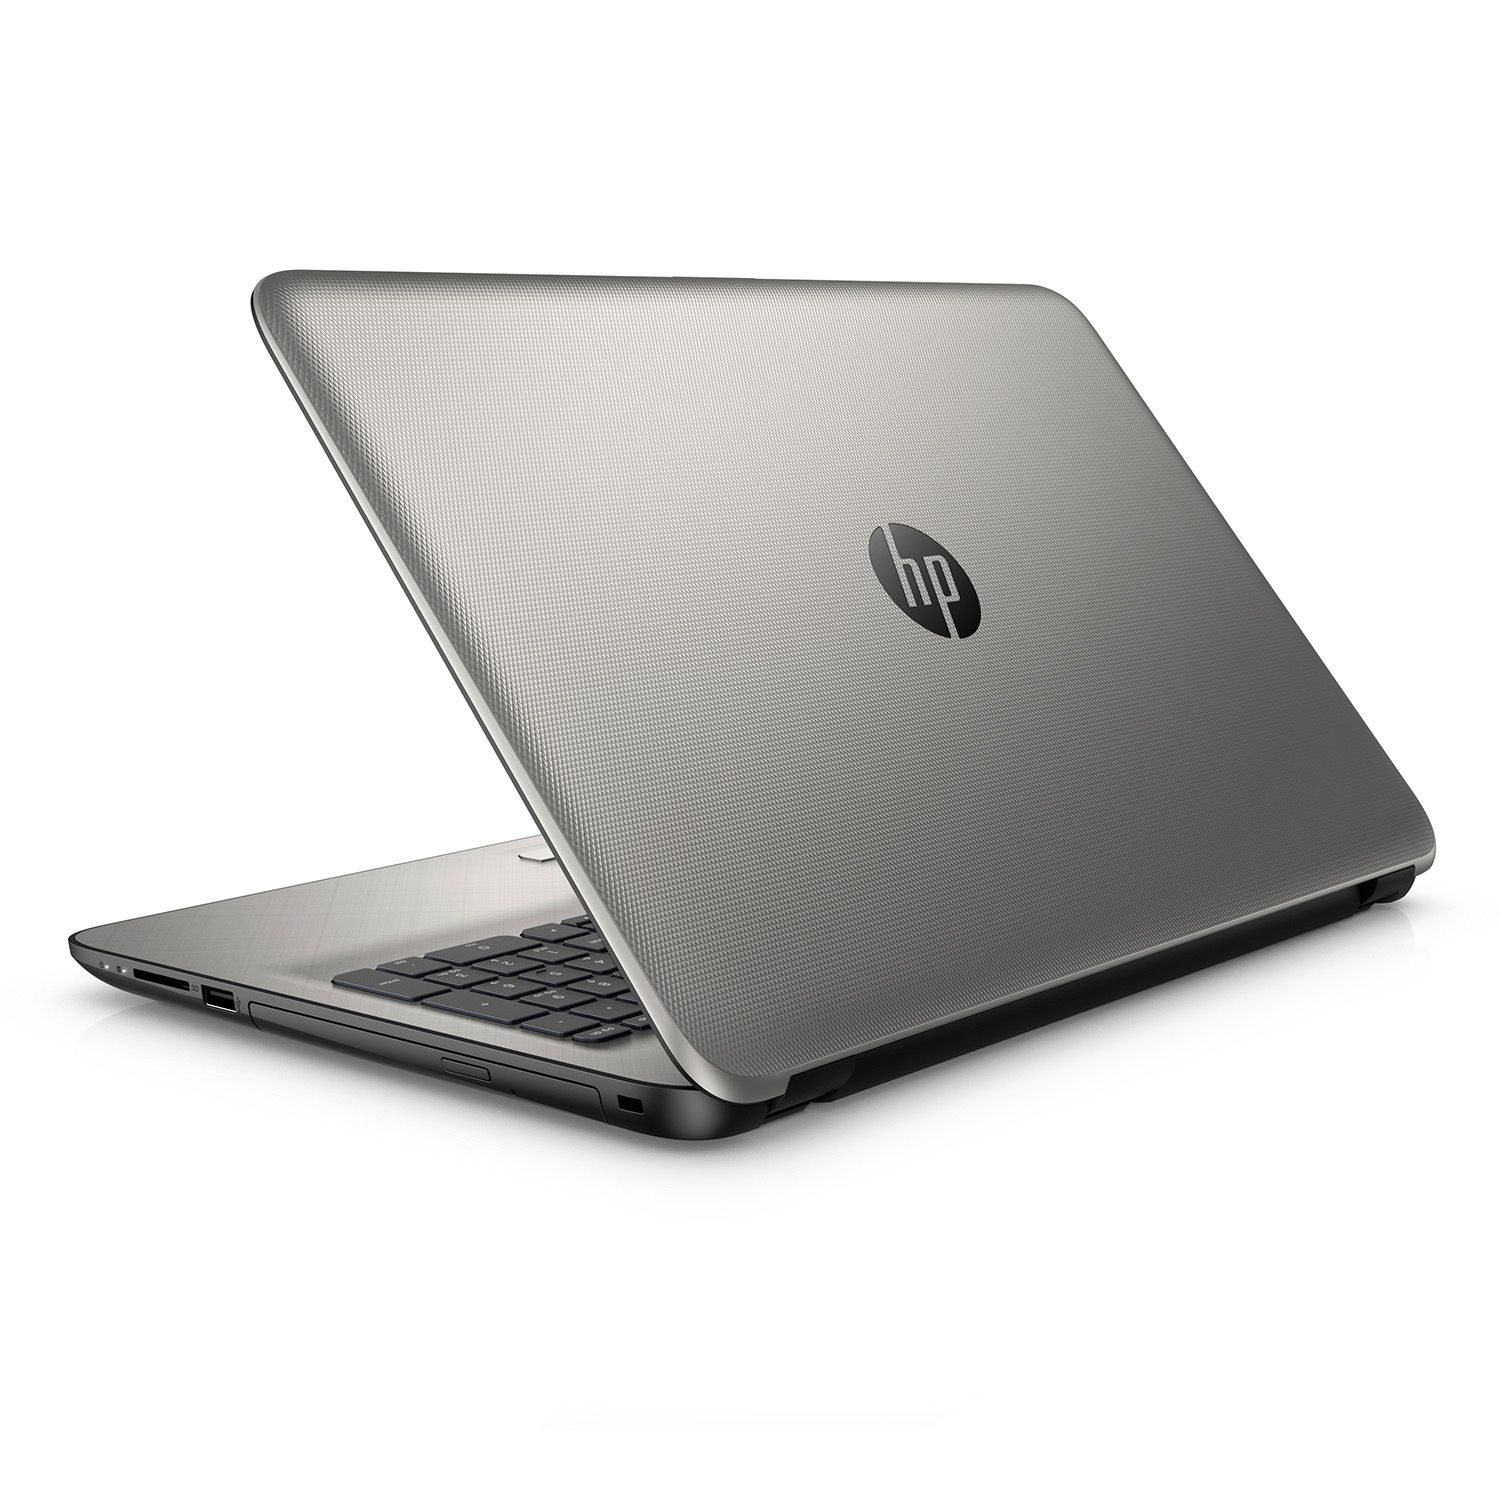 hp 15 ac157cl 15 6 touch laptop intel core i5 5200u 2 2ghz 8gb 1tb w10 ebay. Black Bedroom Furniture Sets. Home Design Ideas